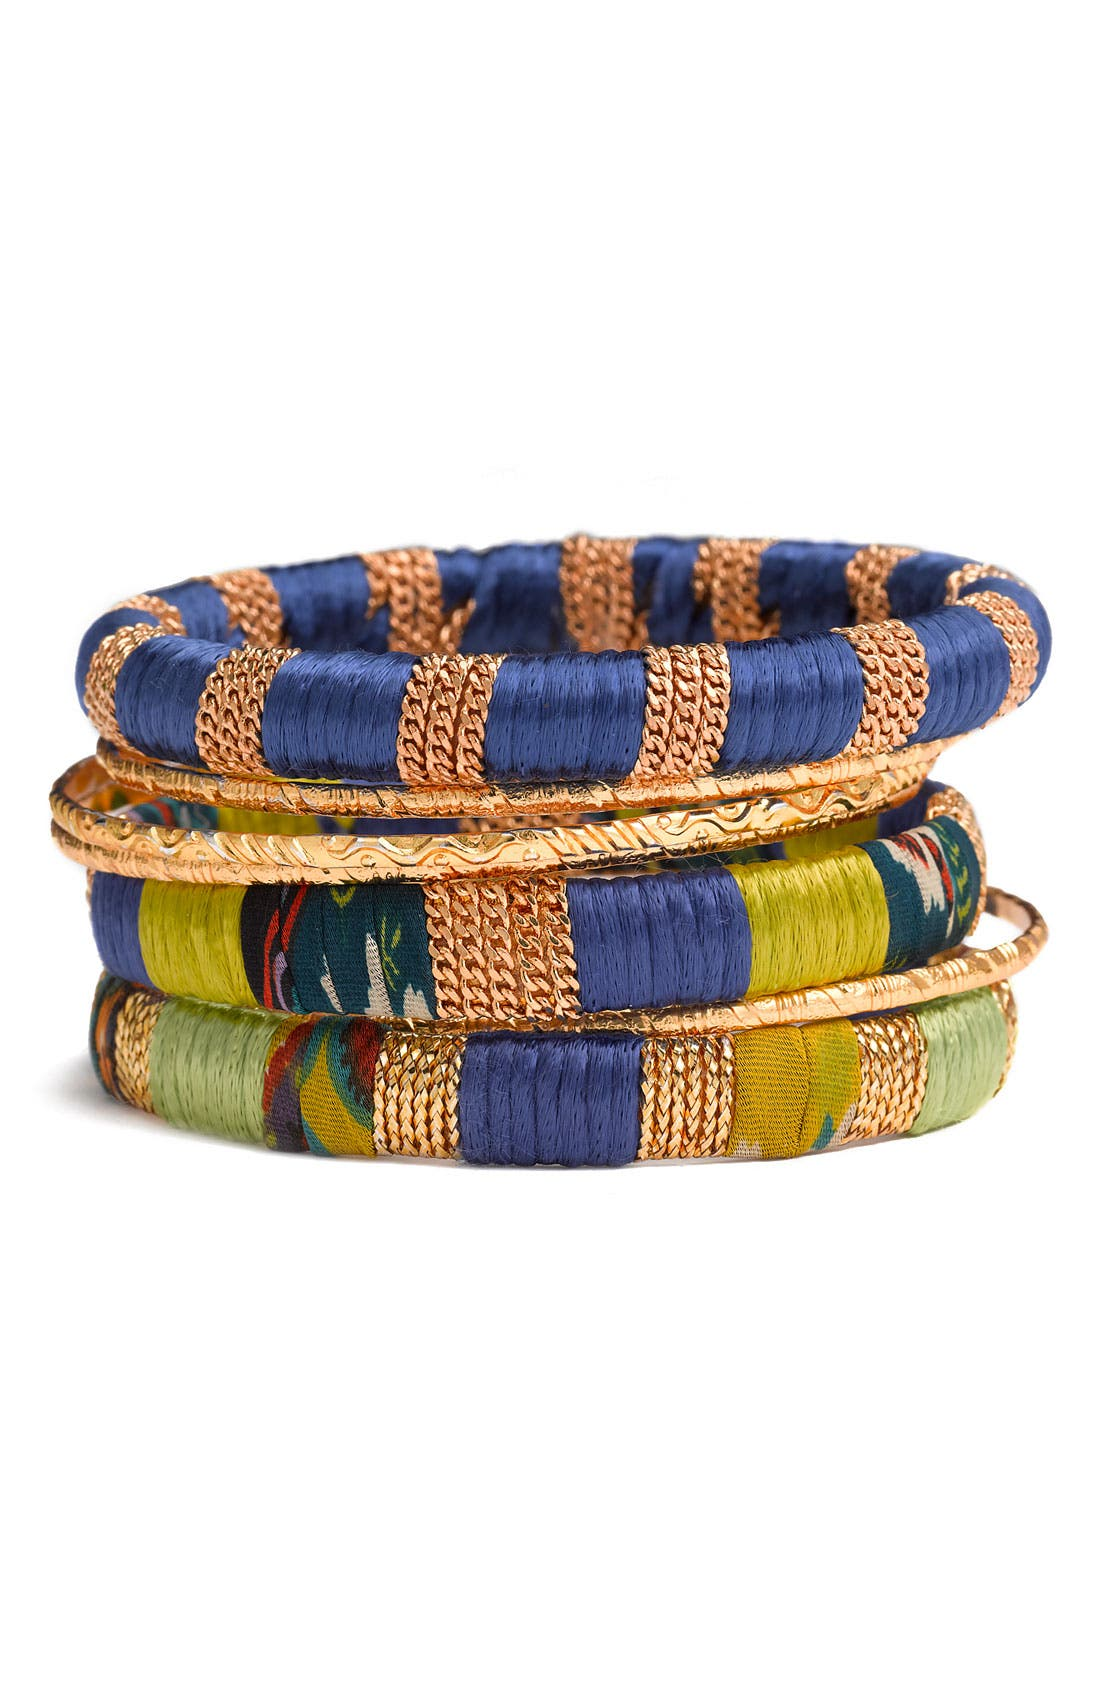 Alternate Image 1 Selected - Cara Accessories Mixed Media Bangles (Set of 7)